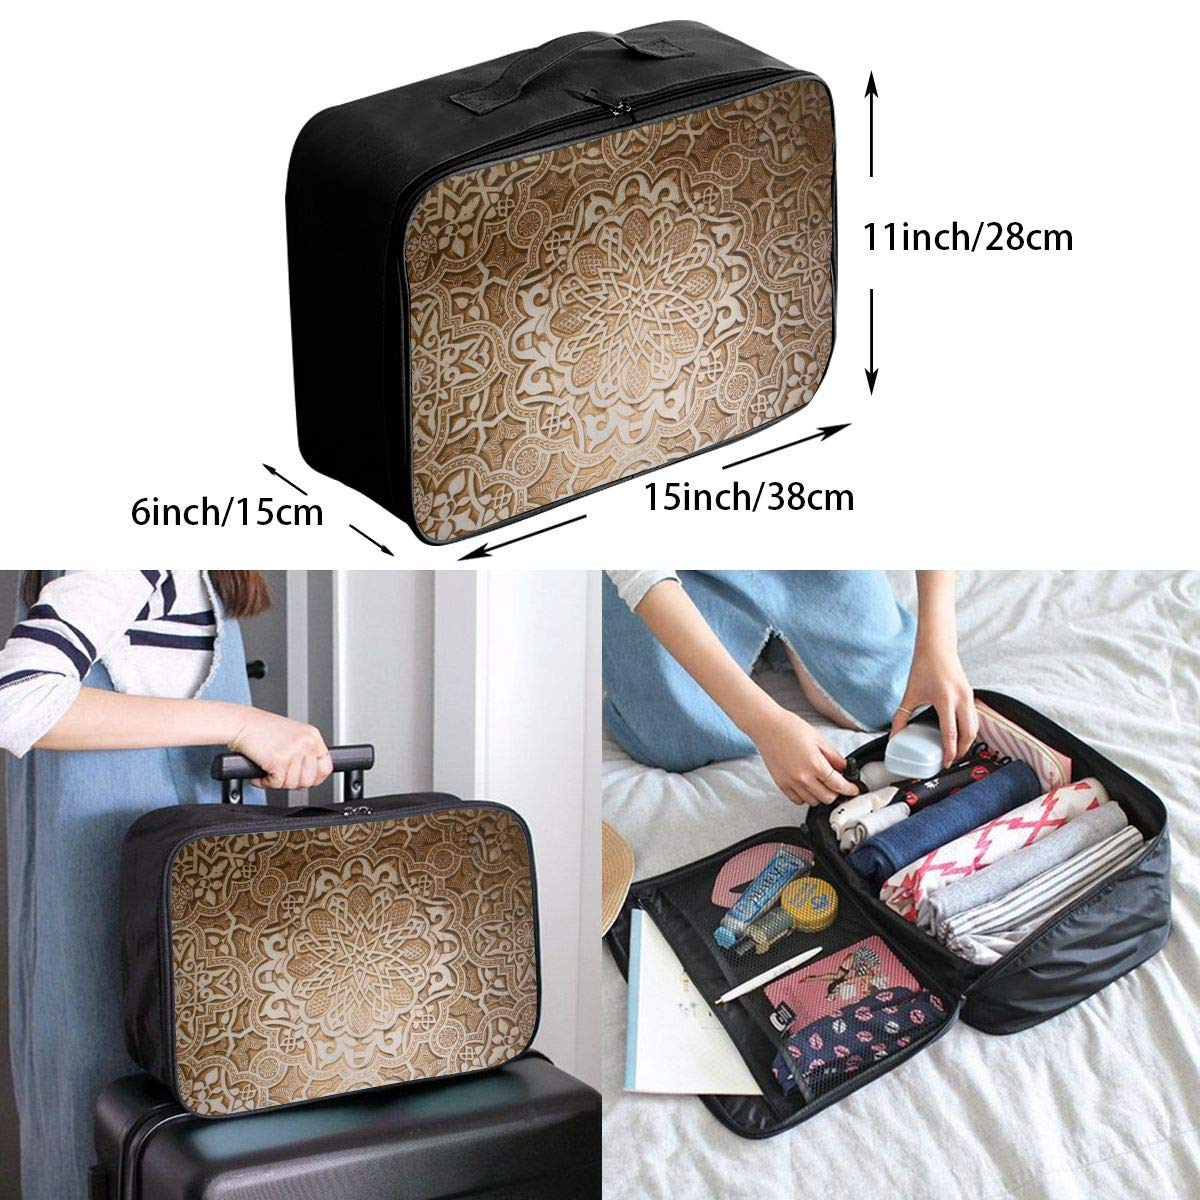 Travel Luggage Duffle Bag Lightweight Portable Handbag Retro Pattern Large Capacity Waterproof Foldable Storage Tote